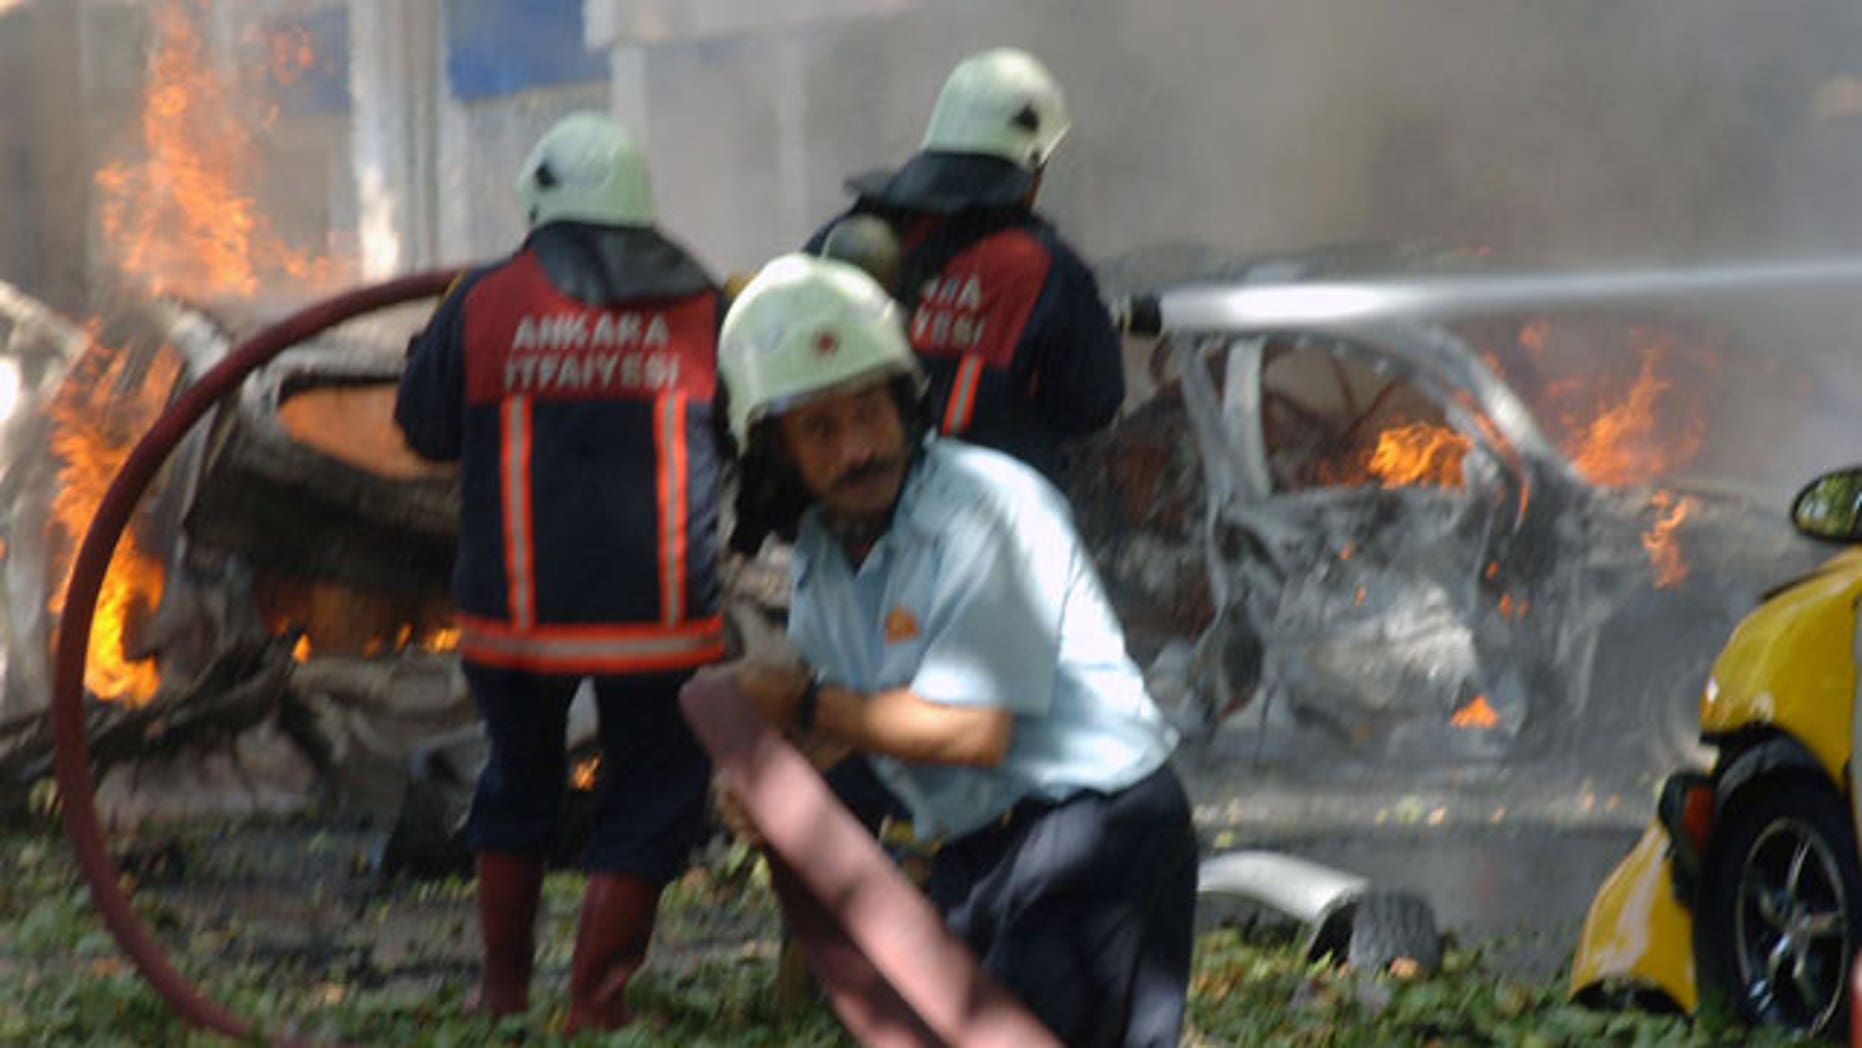 Firefighters are seen working at the site after a suspected car bomb exploded in a busy street in the Turkish capital Ankara, Turkey, Tuesday, Sept. 20, 2011.